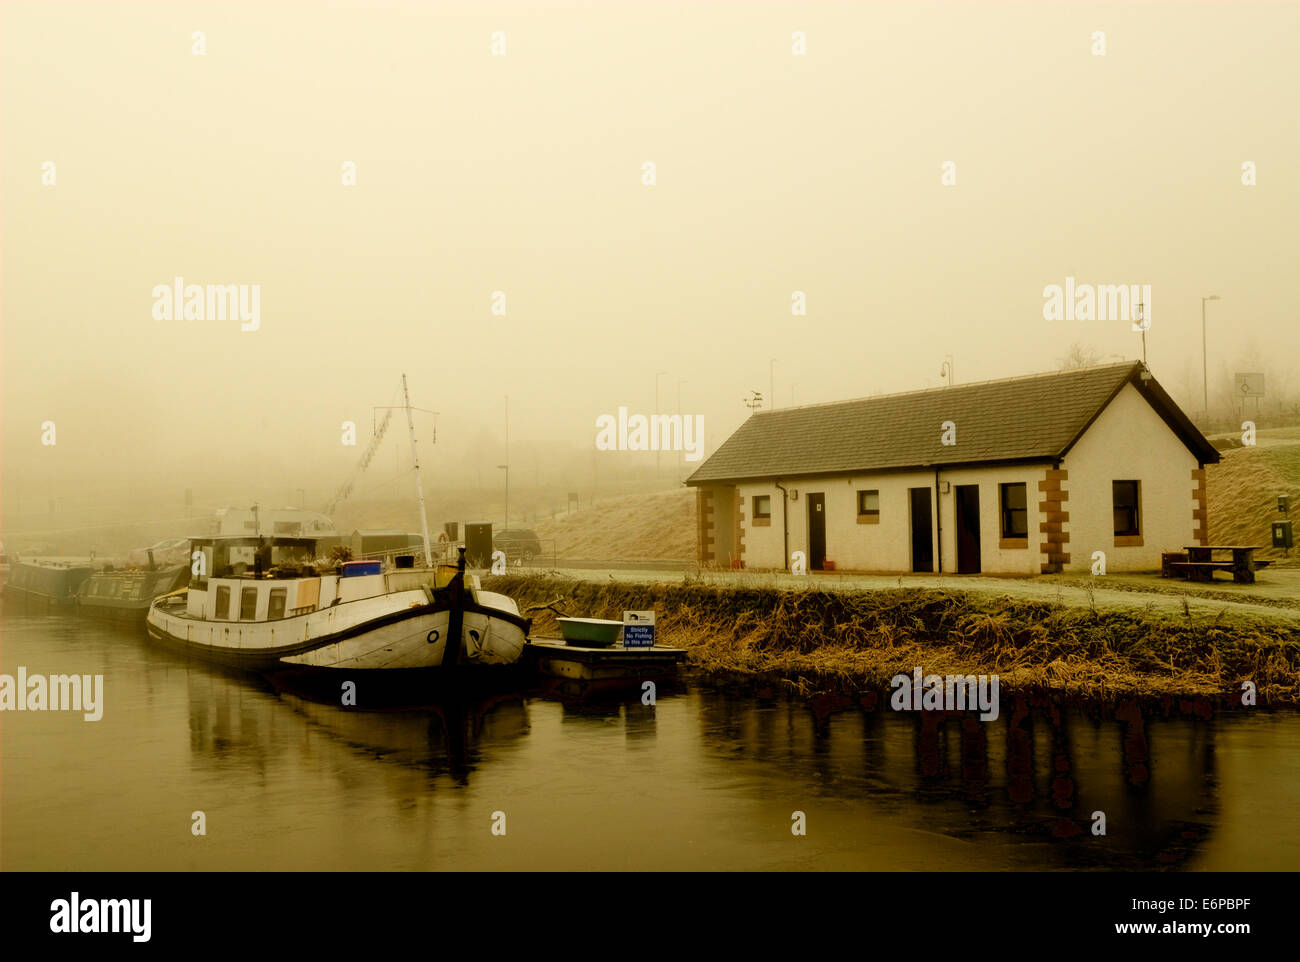 Boat Moored at Auchinstarry marina on a very foggy day. - Stock Image